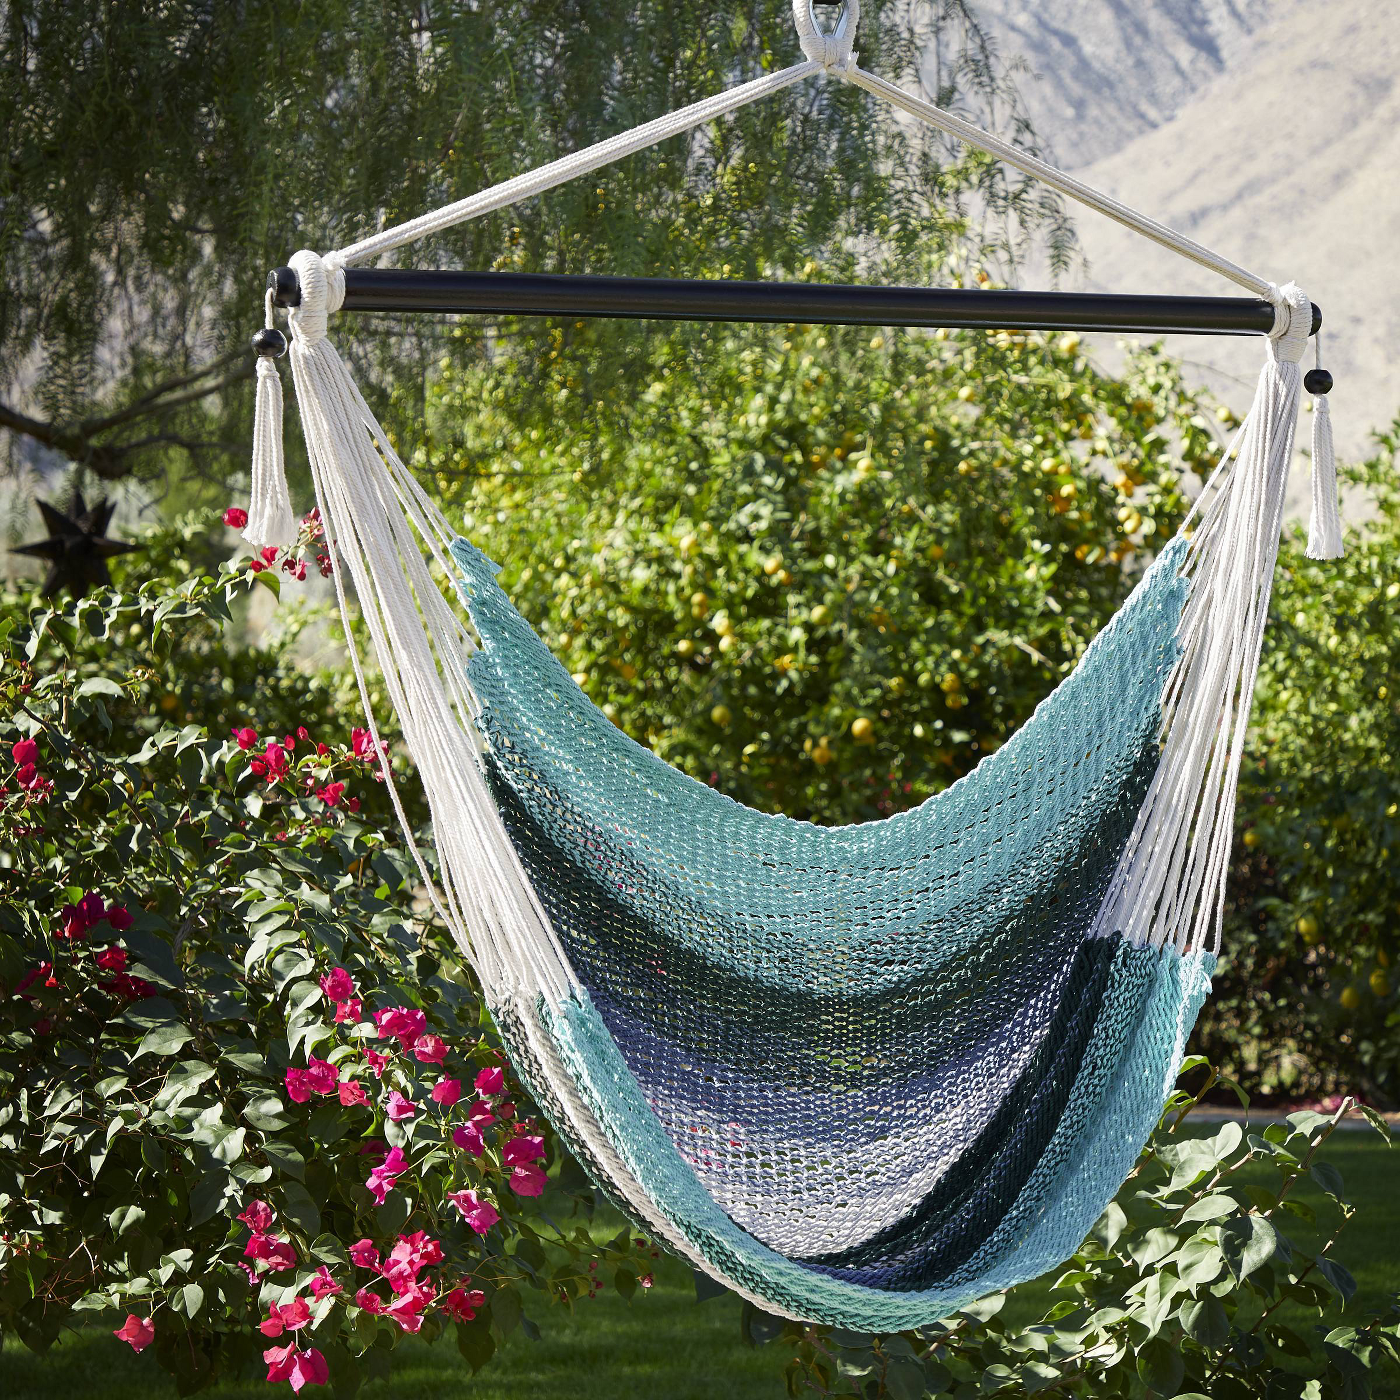 Macrame Striped Hammock Chair with Spreader Bar